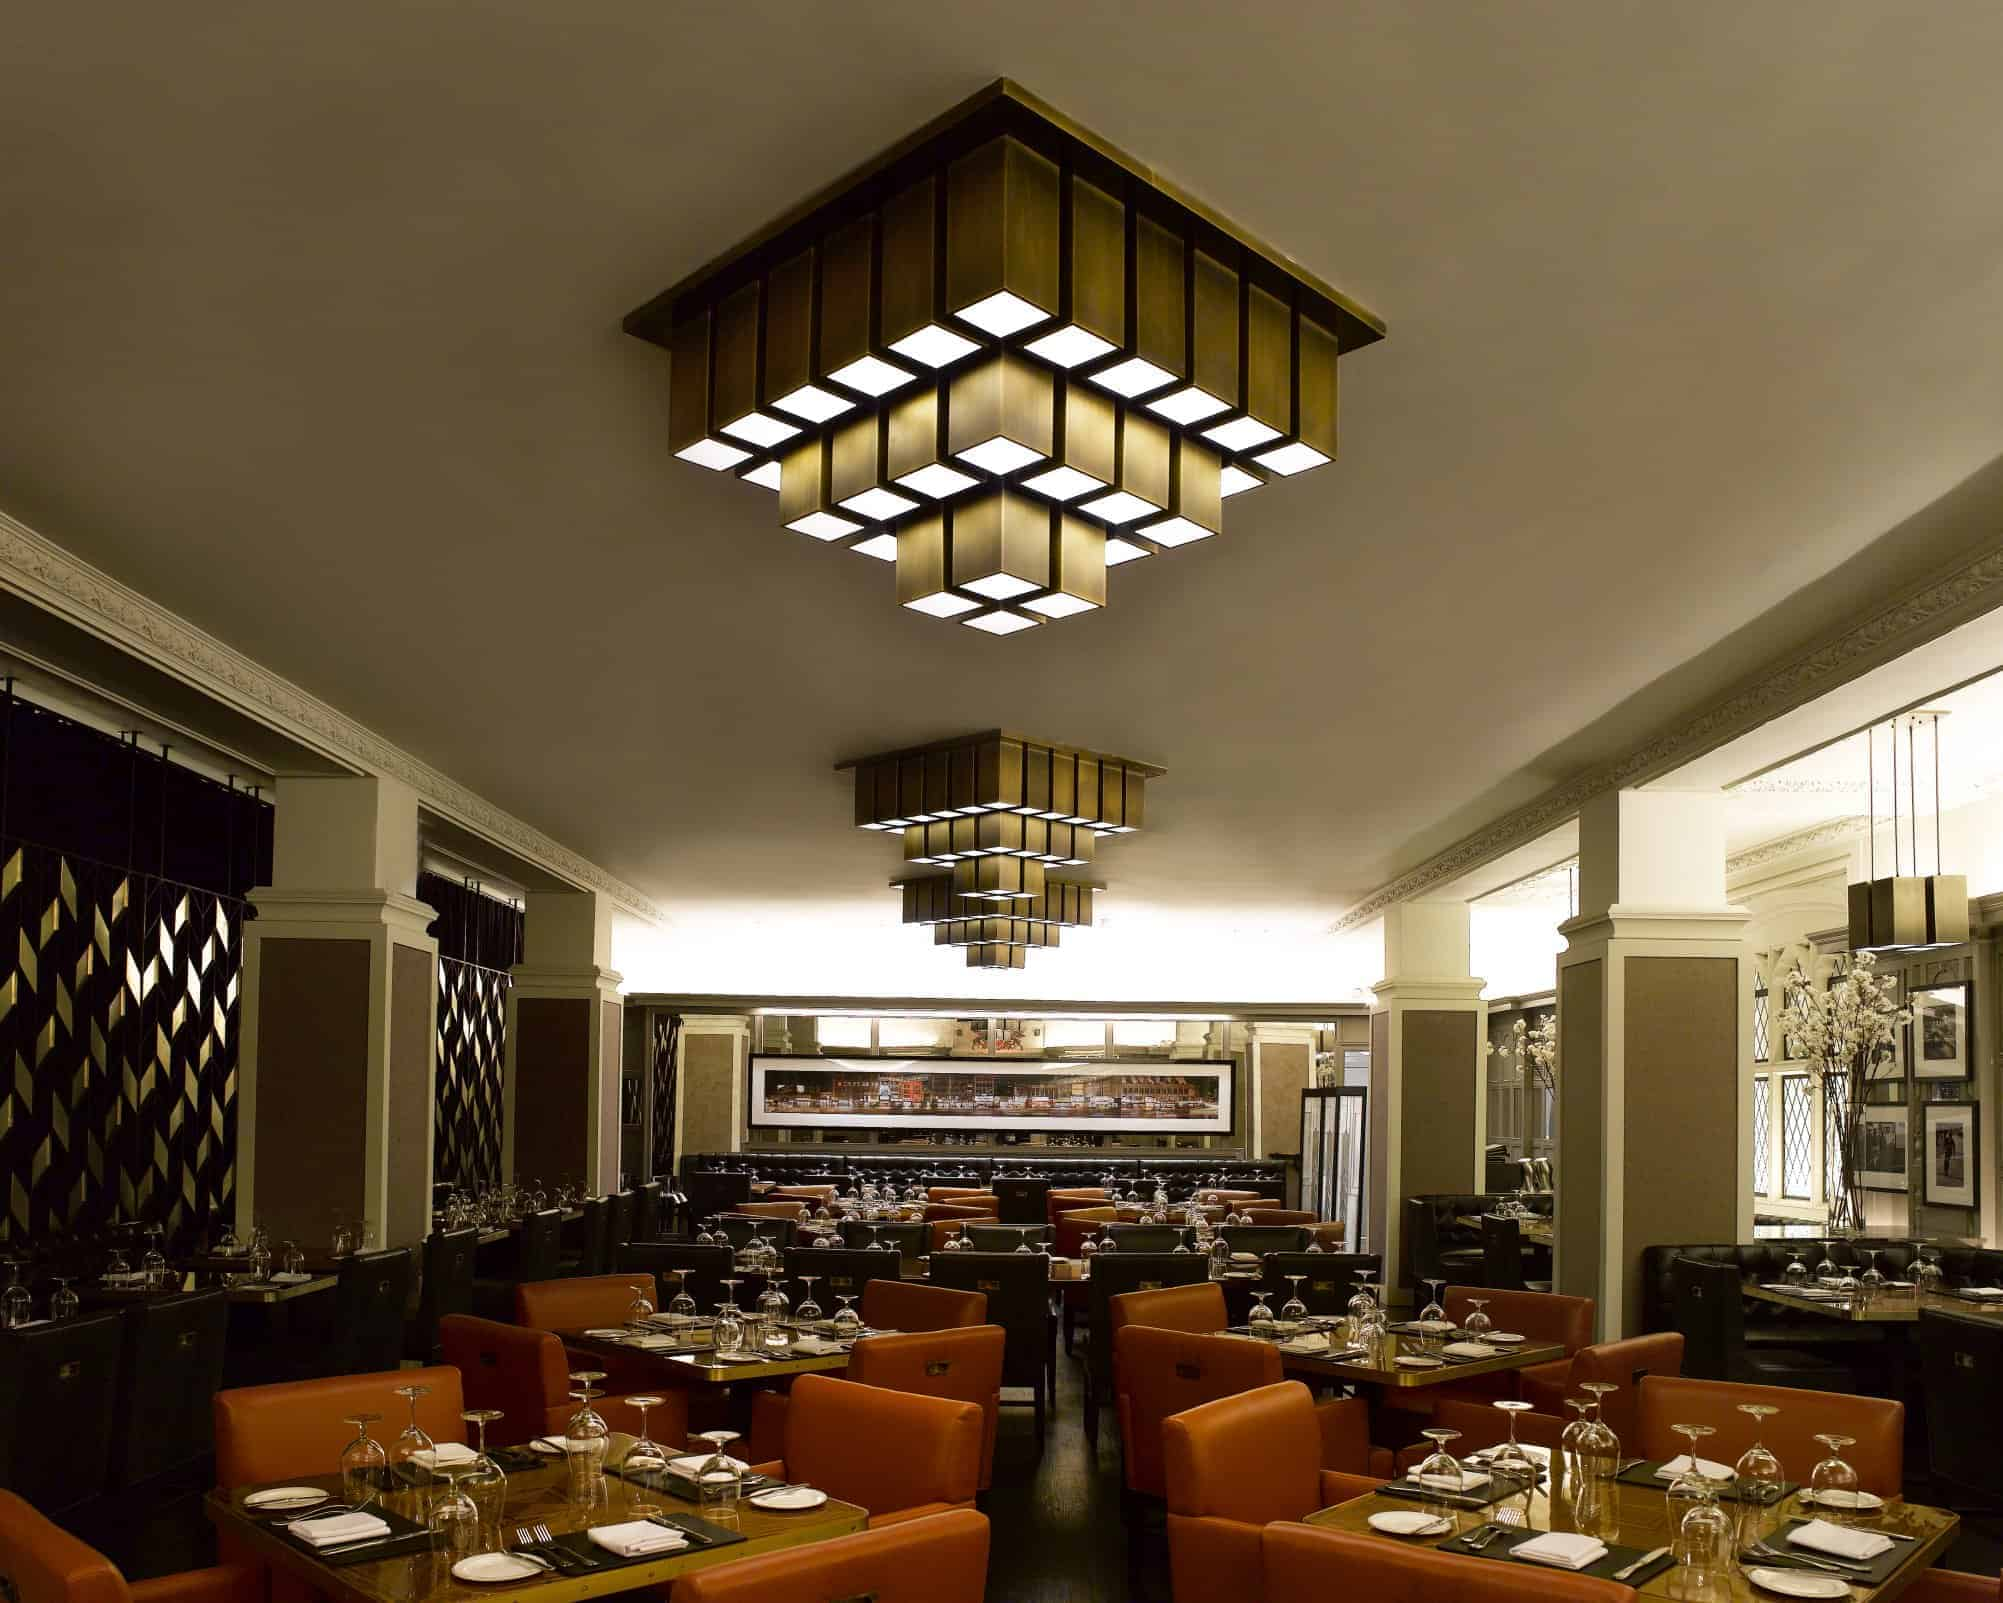 Custom Contract Restaurant Lighting 2